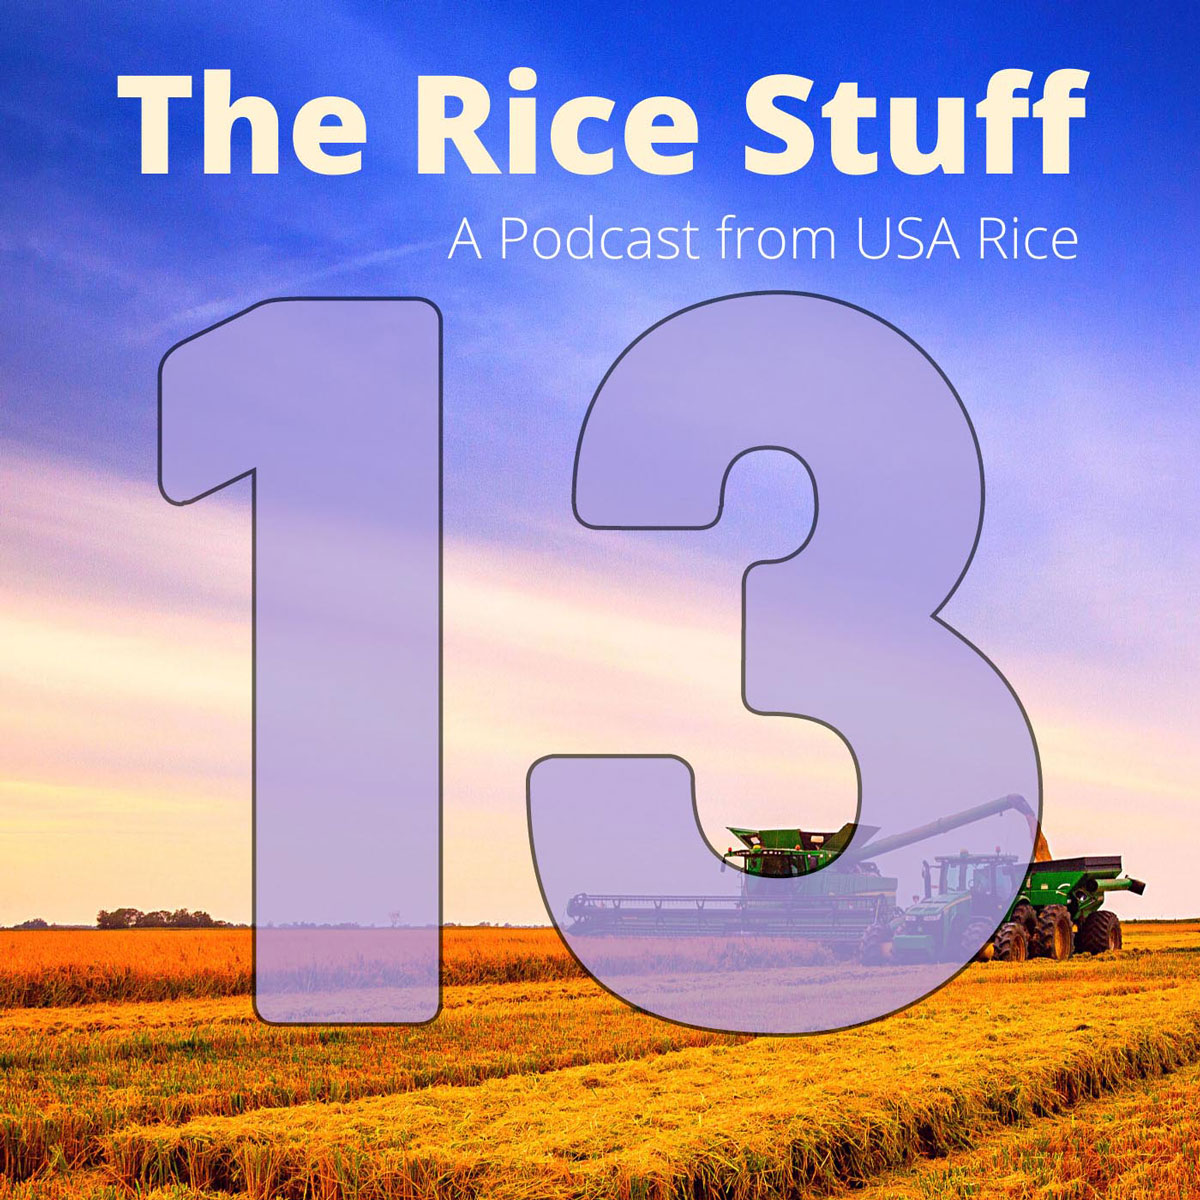 Number 13 superimposed over photo of combine and grain cart in mature rice field